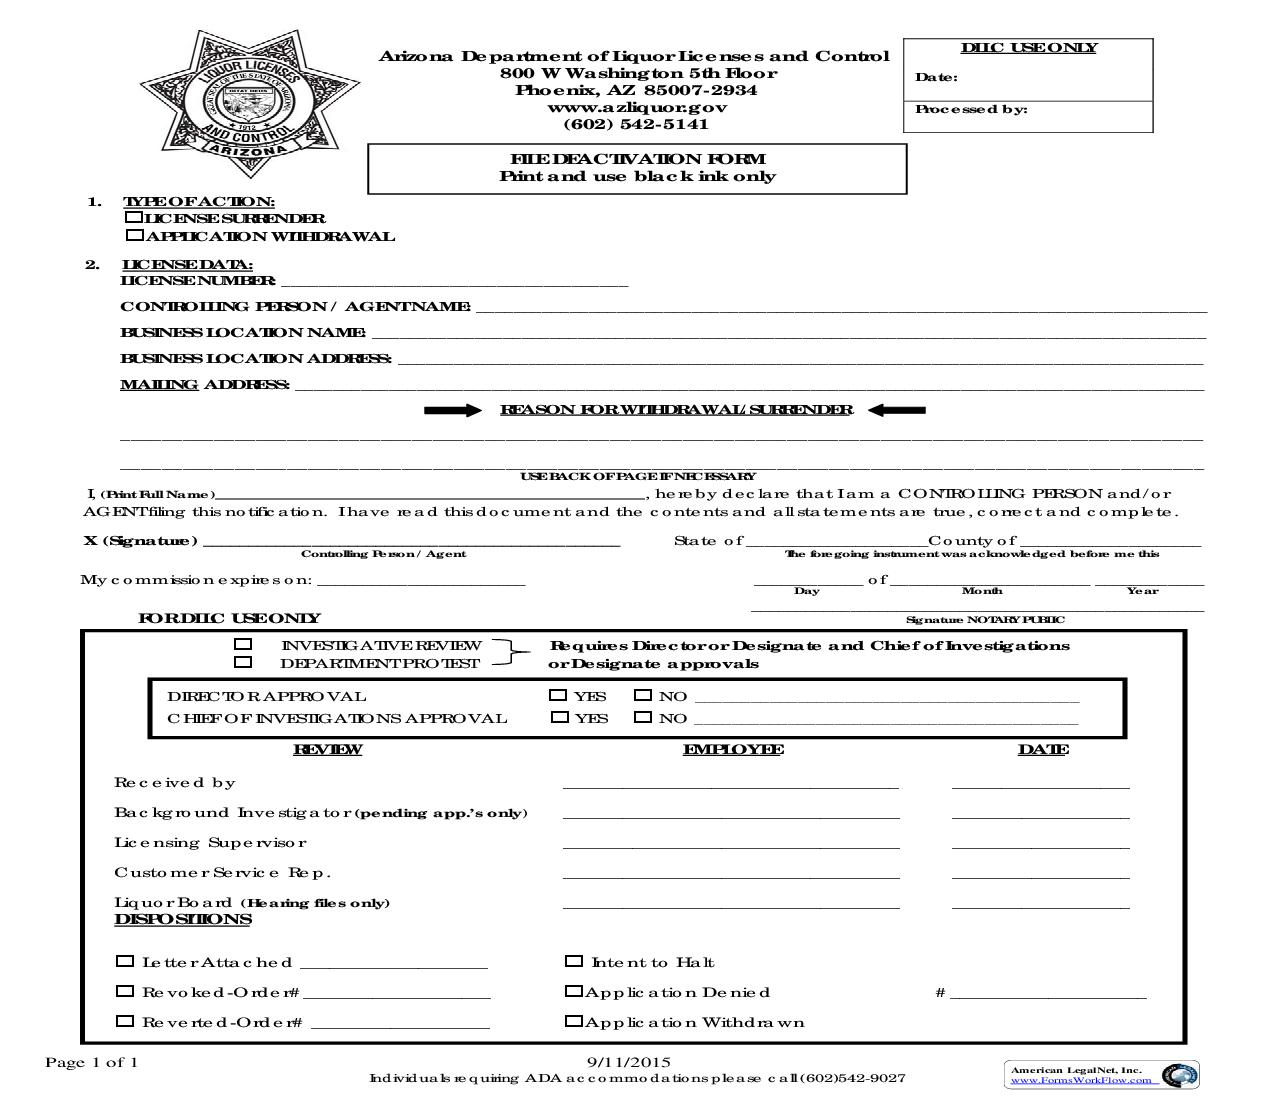 File Deactivation Form {LIC0050} | Pdf Fpdf Doc Docx | Arizona